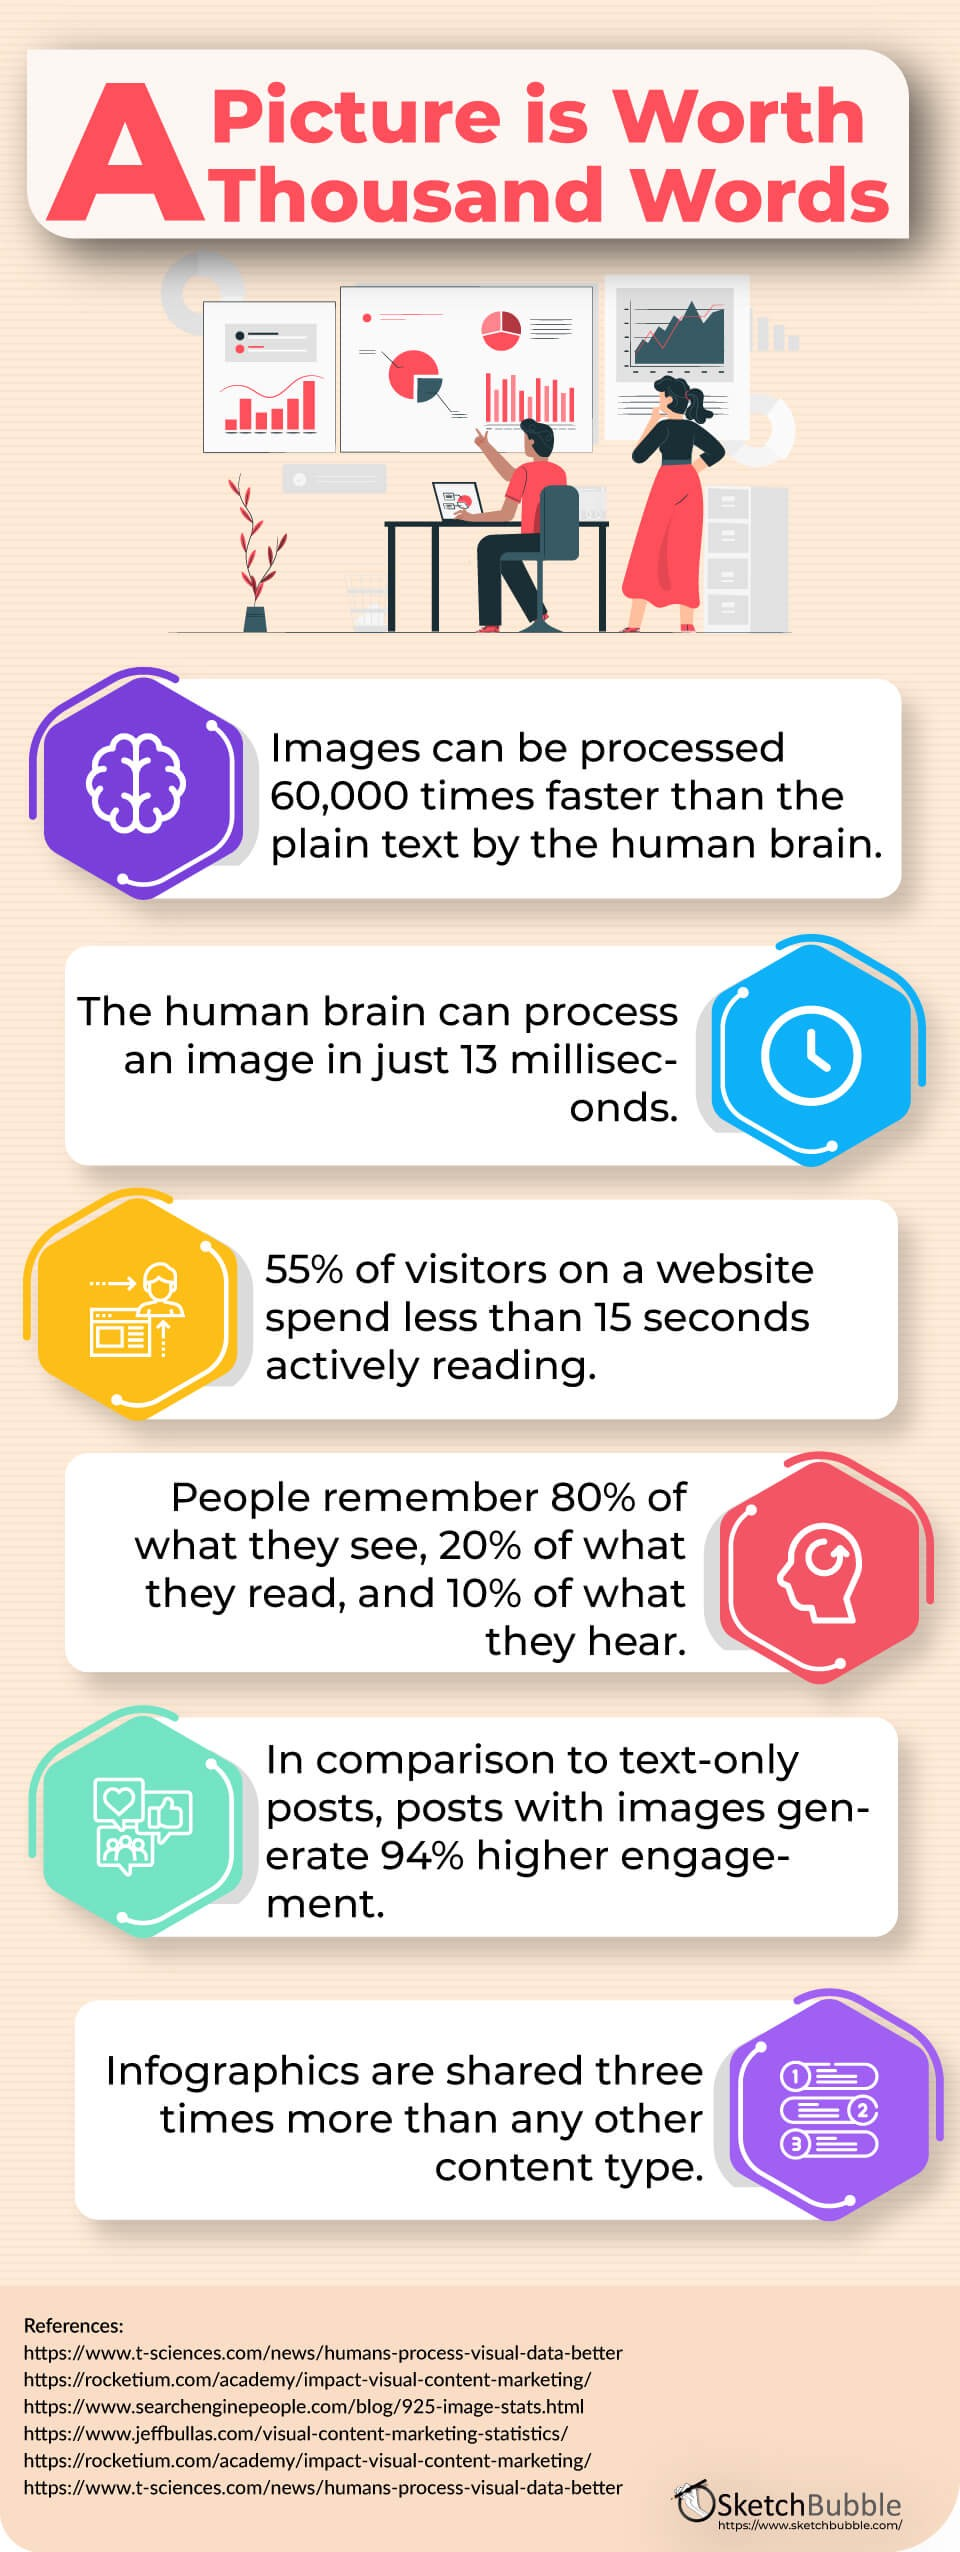 Infographic, Visual Storytelling, Sketchbubble, Brand Image